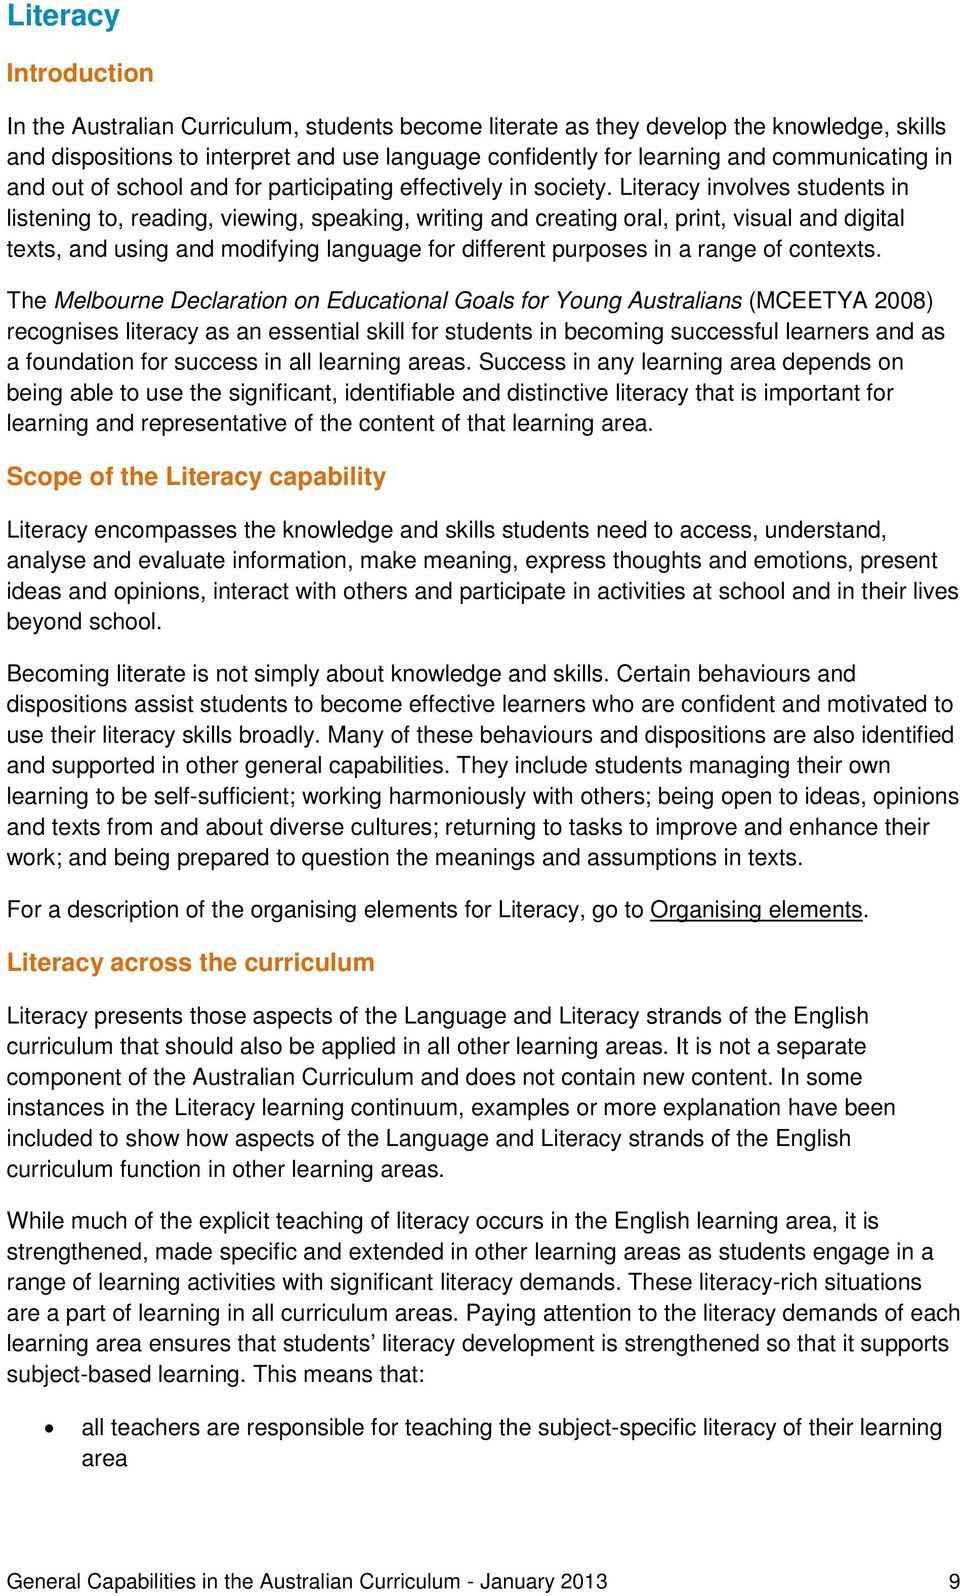 Literacy involves students in listening to, reading, viewing, speaking, writing and creating oral, print, visual and digital texts, and using and modifying language for different purposes in a range